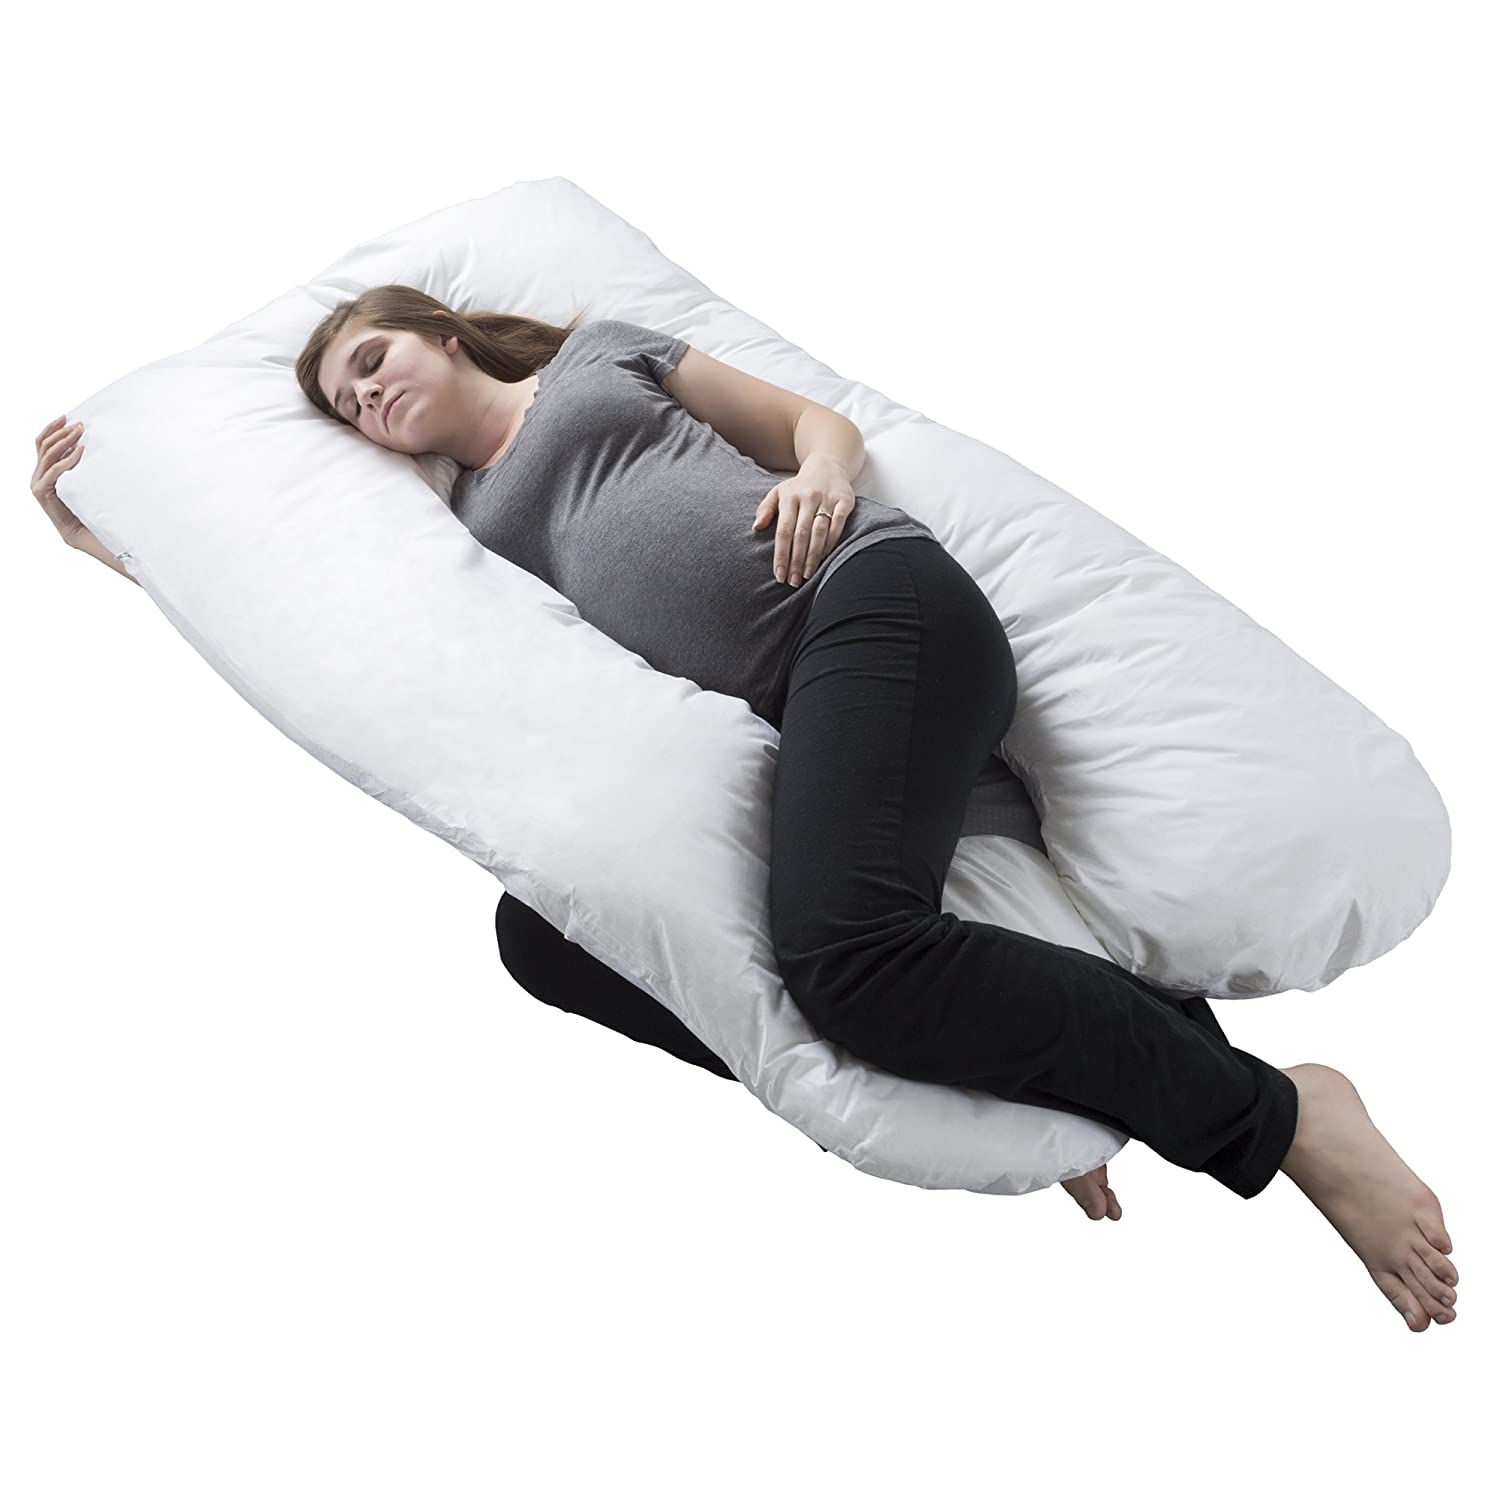 body sleeping home pregnancy pillows top reviews best pillow perfect